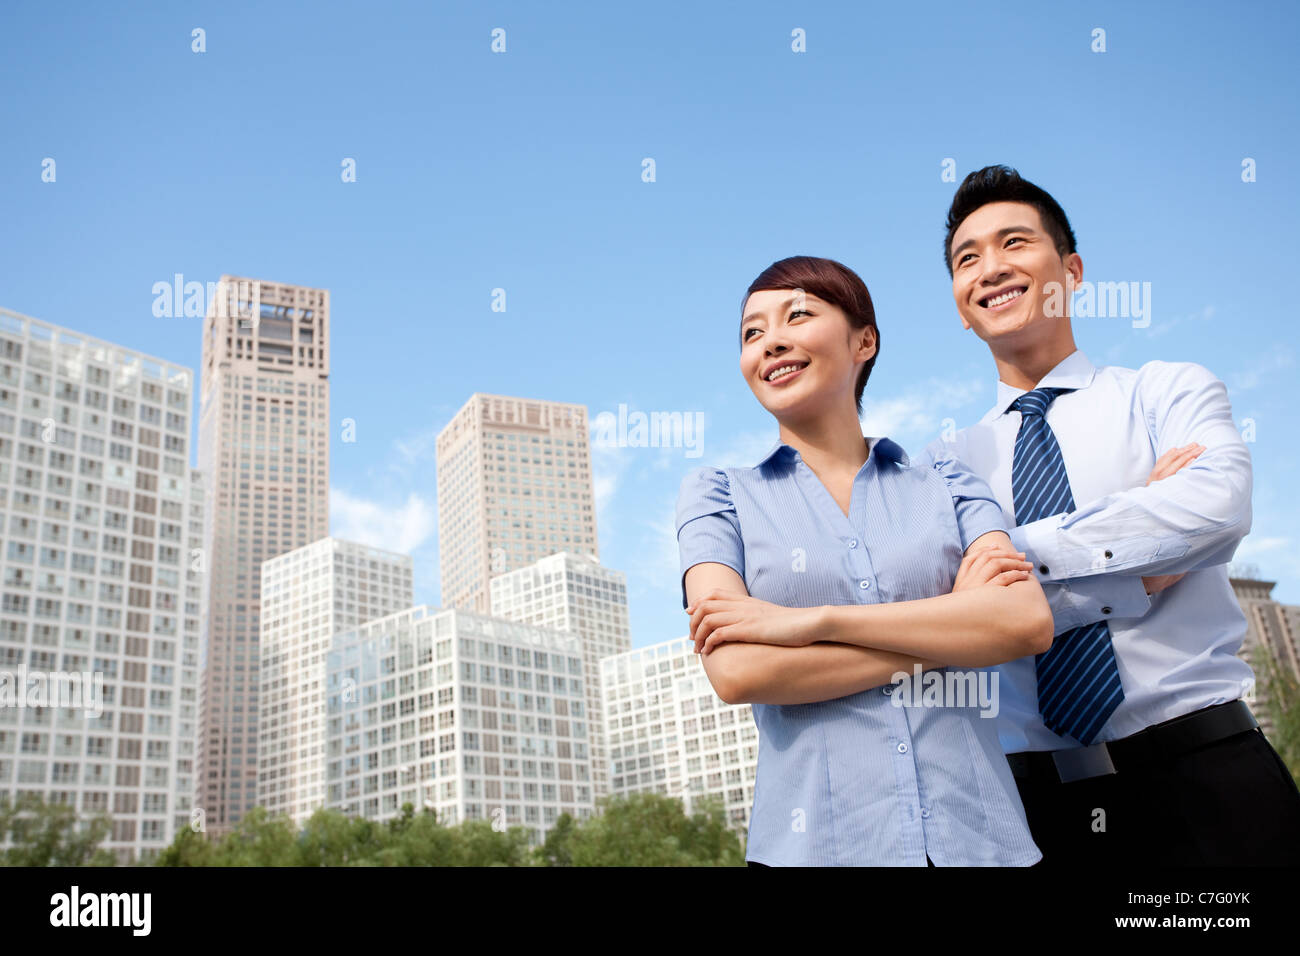 Colleagues Standing Confidently Together Stock Photo